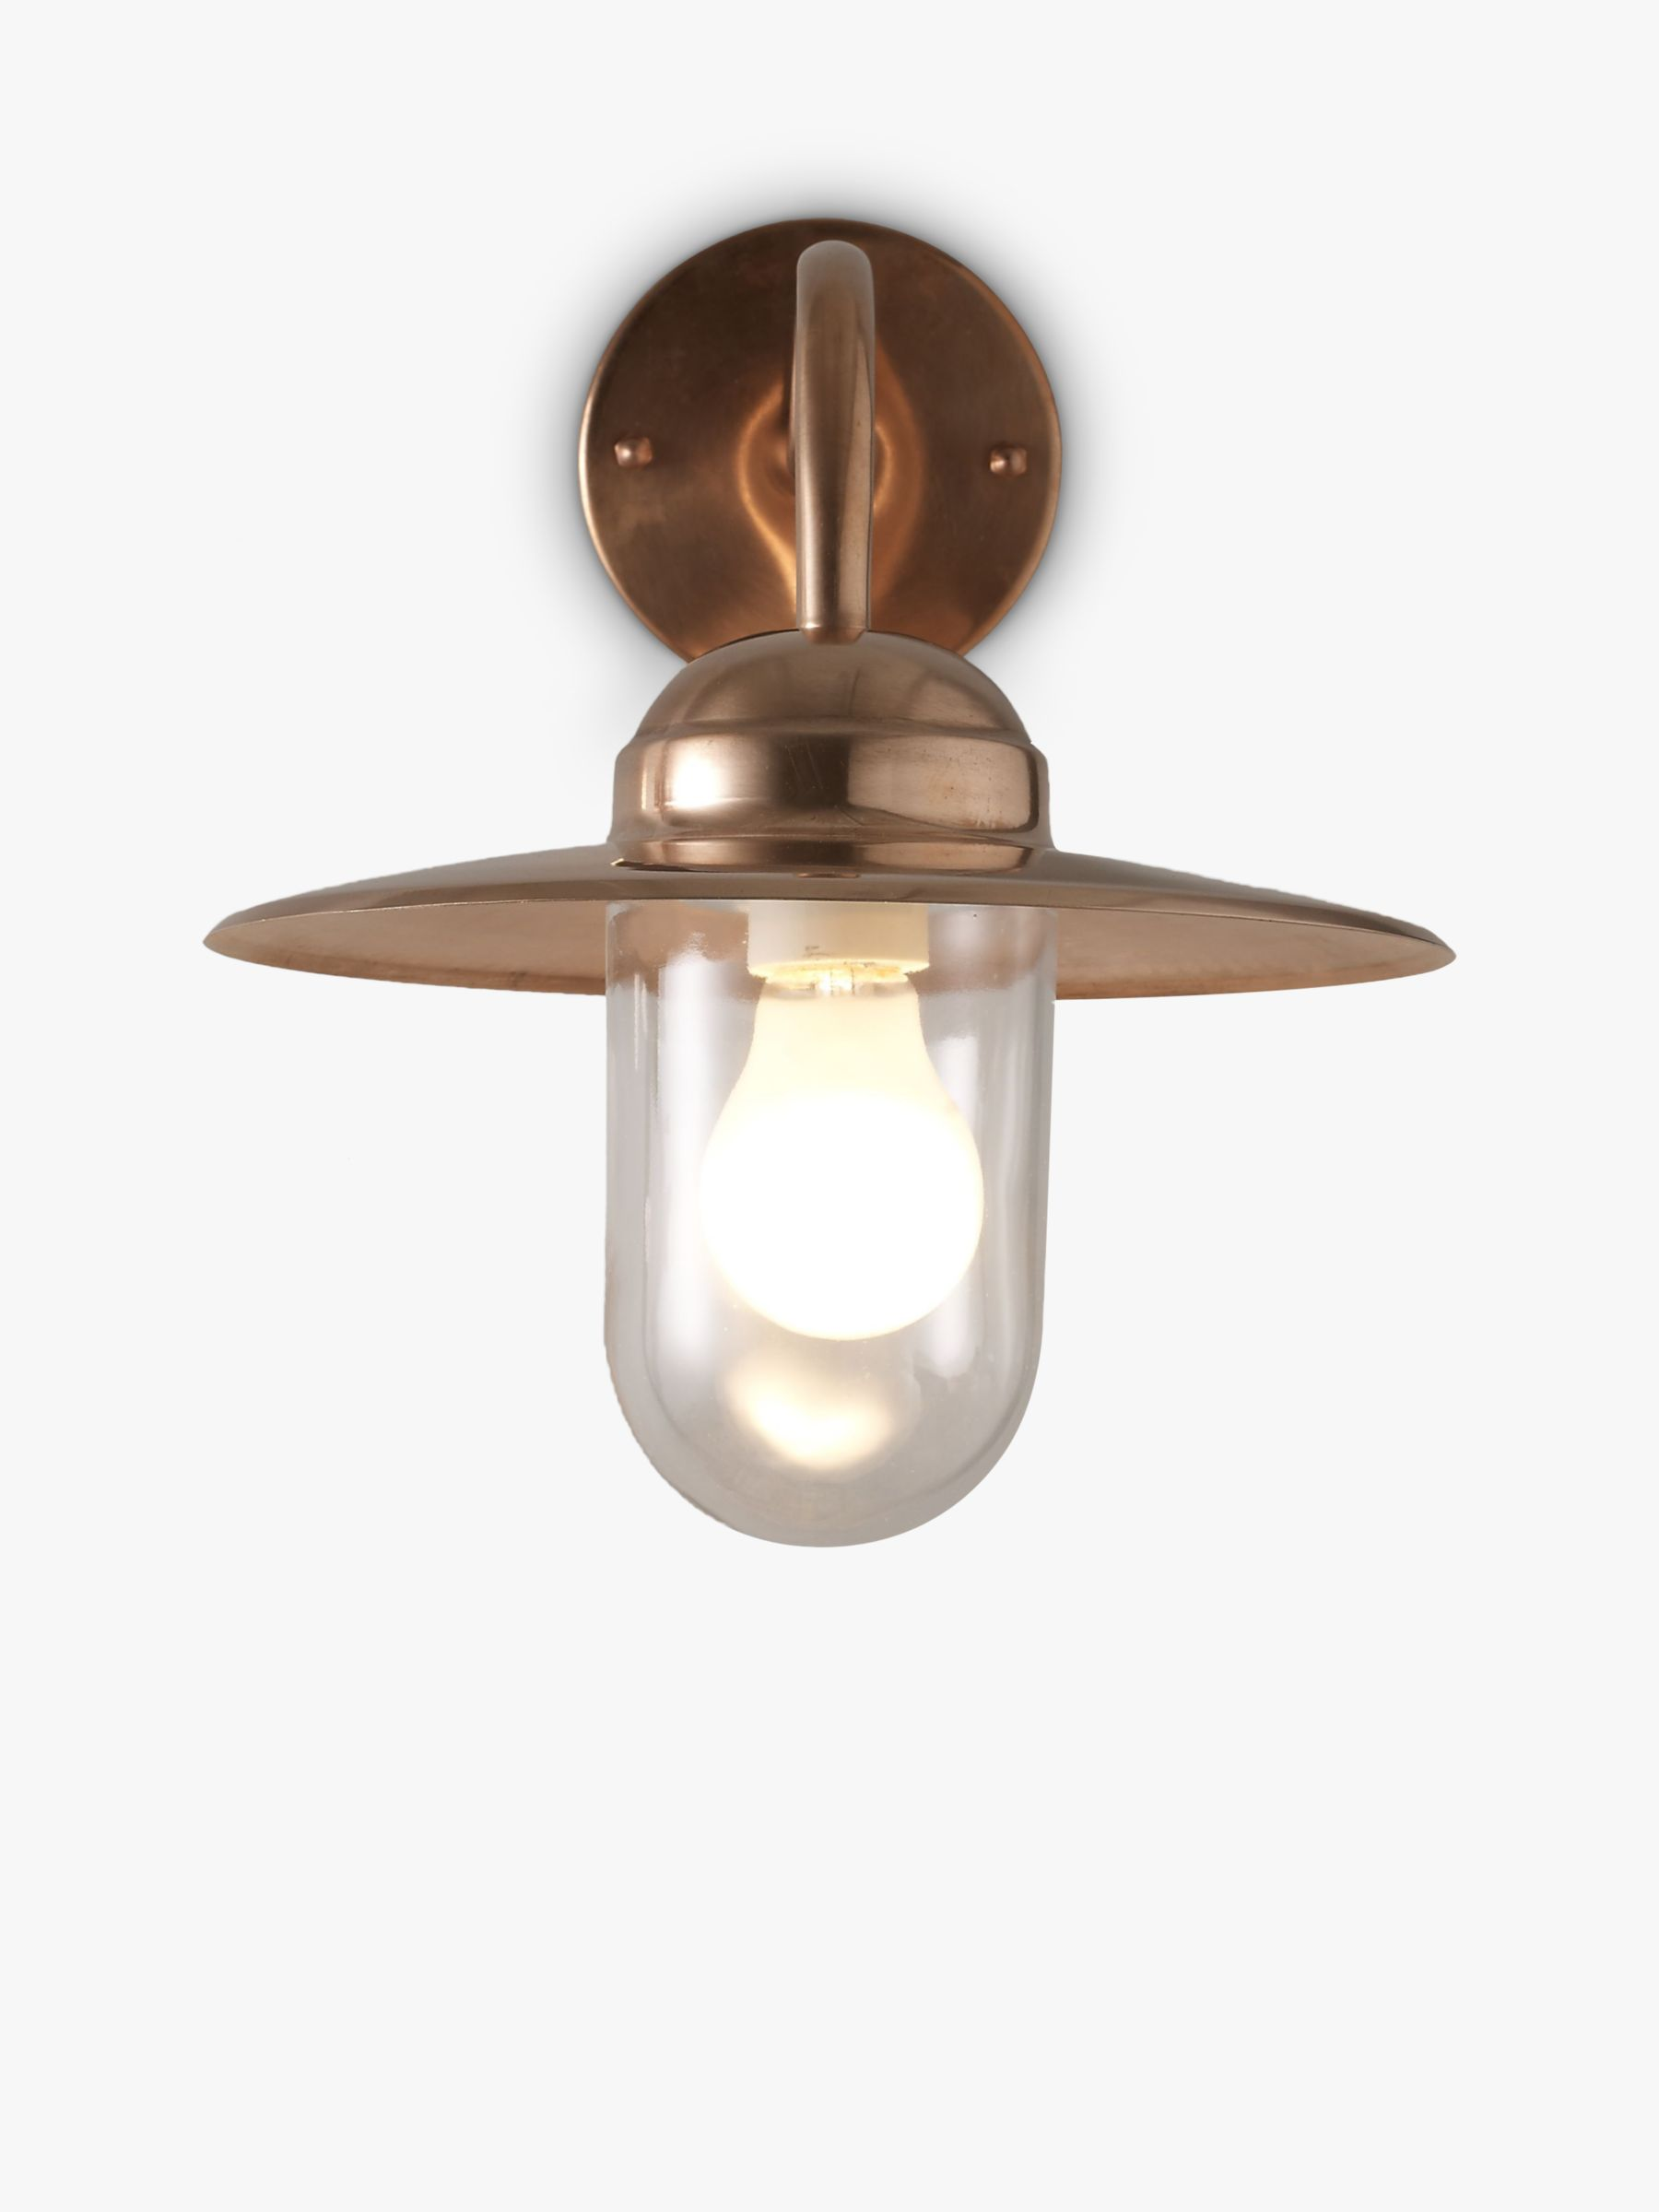 Copper Garden Wall Lights : Nordlux Luxembourg Outdoor Wall Light, Copper - review, compare prices, buy online